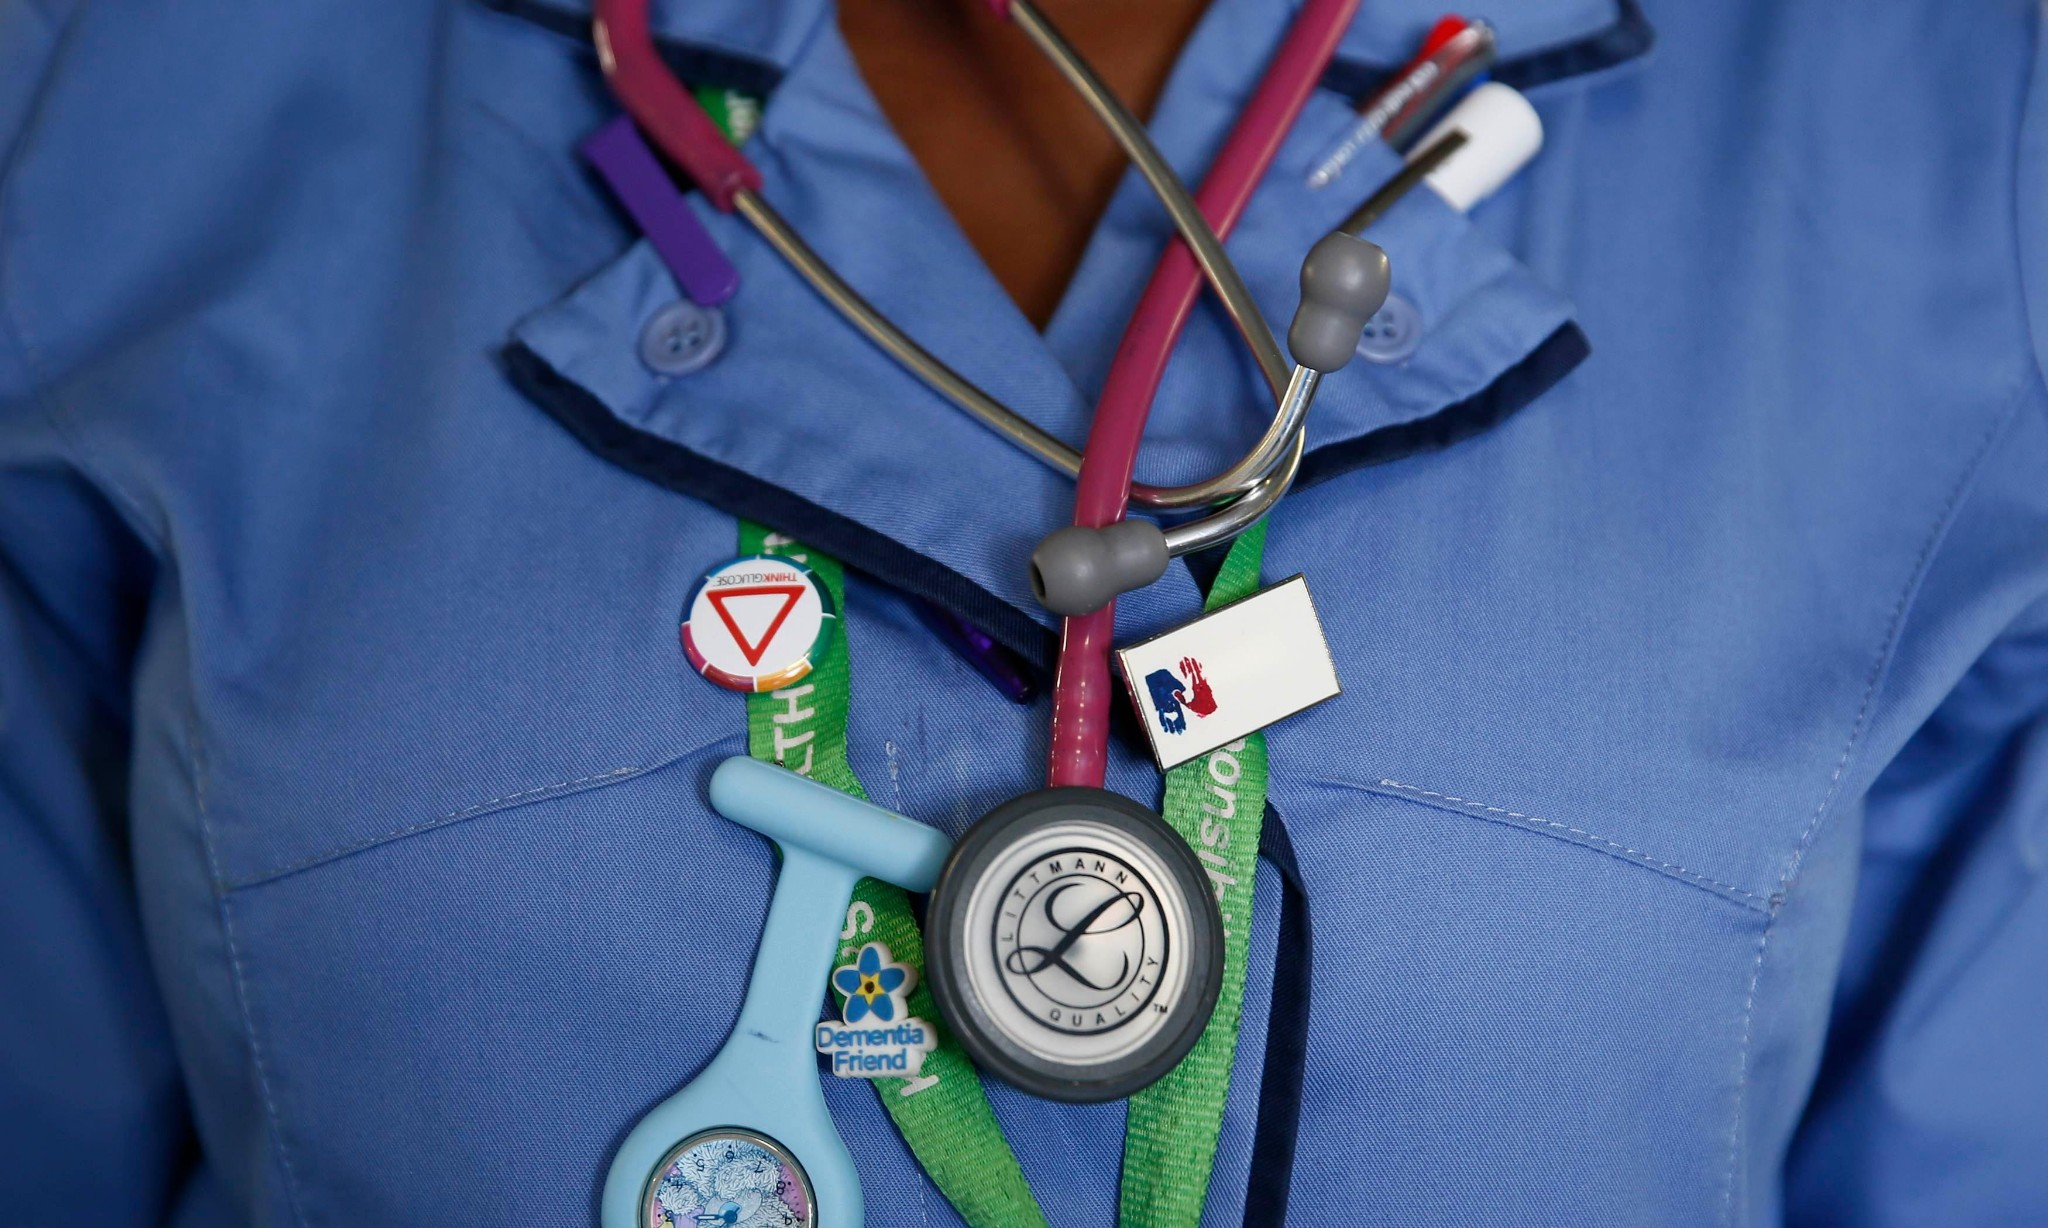 NHS crisis: 40% of hospitals issue alert in first week of new year